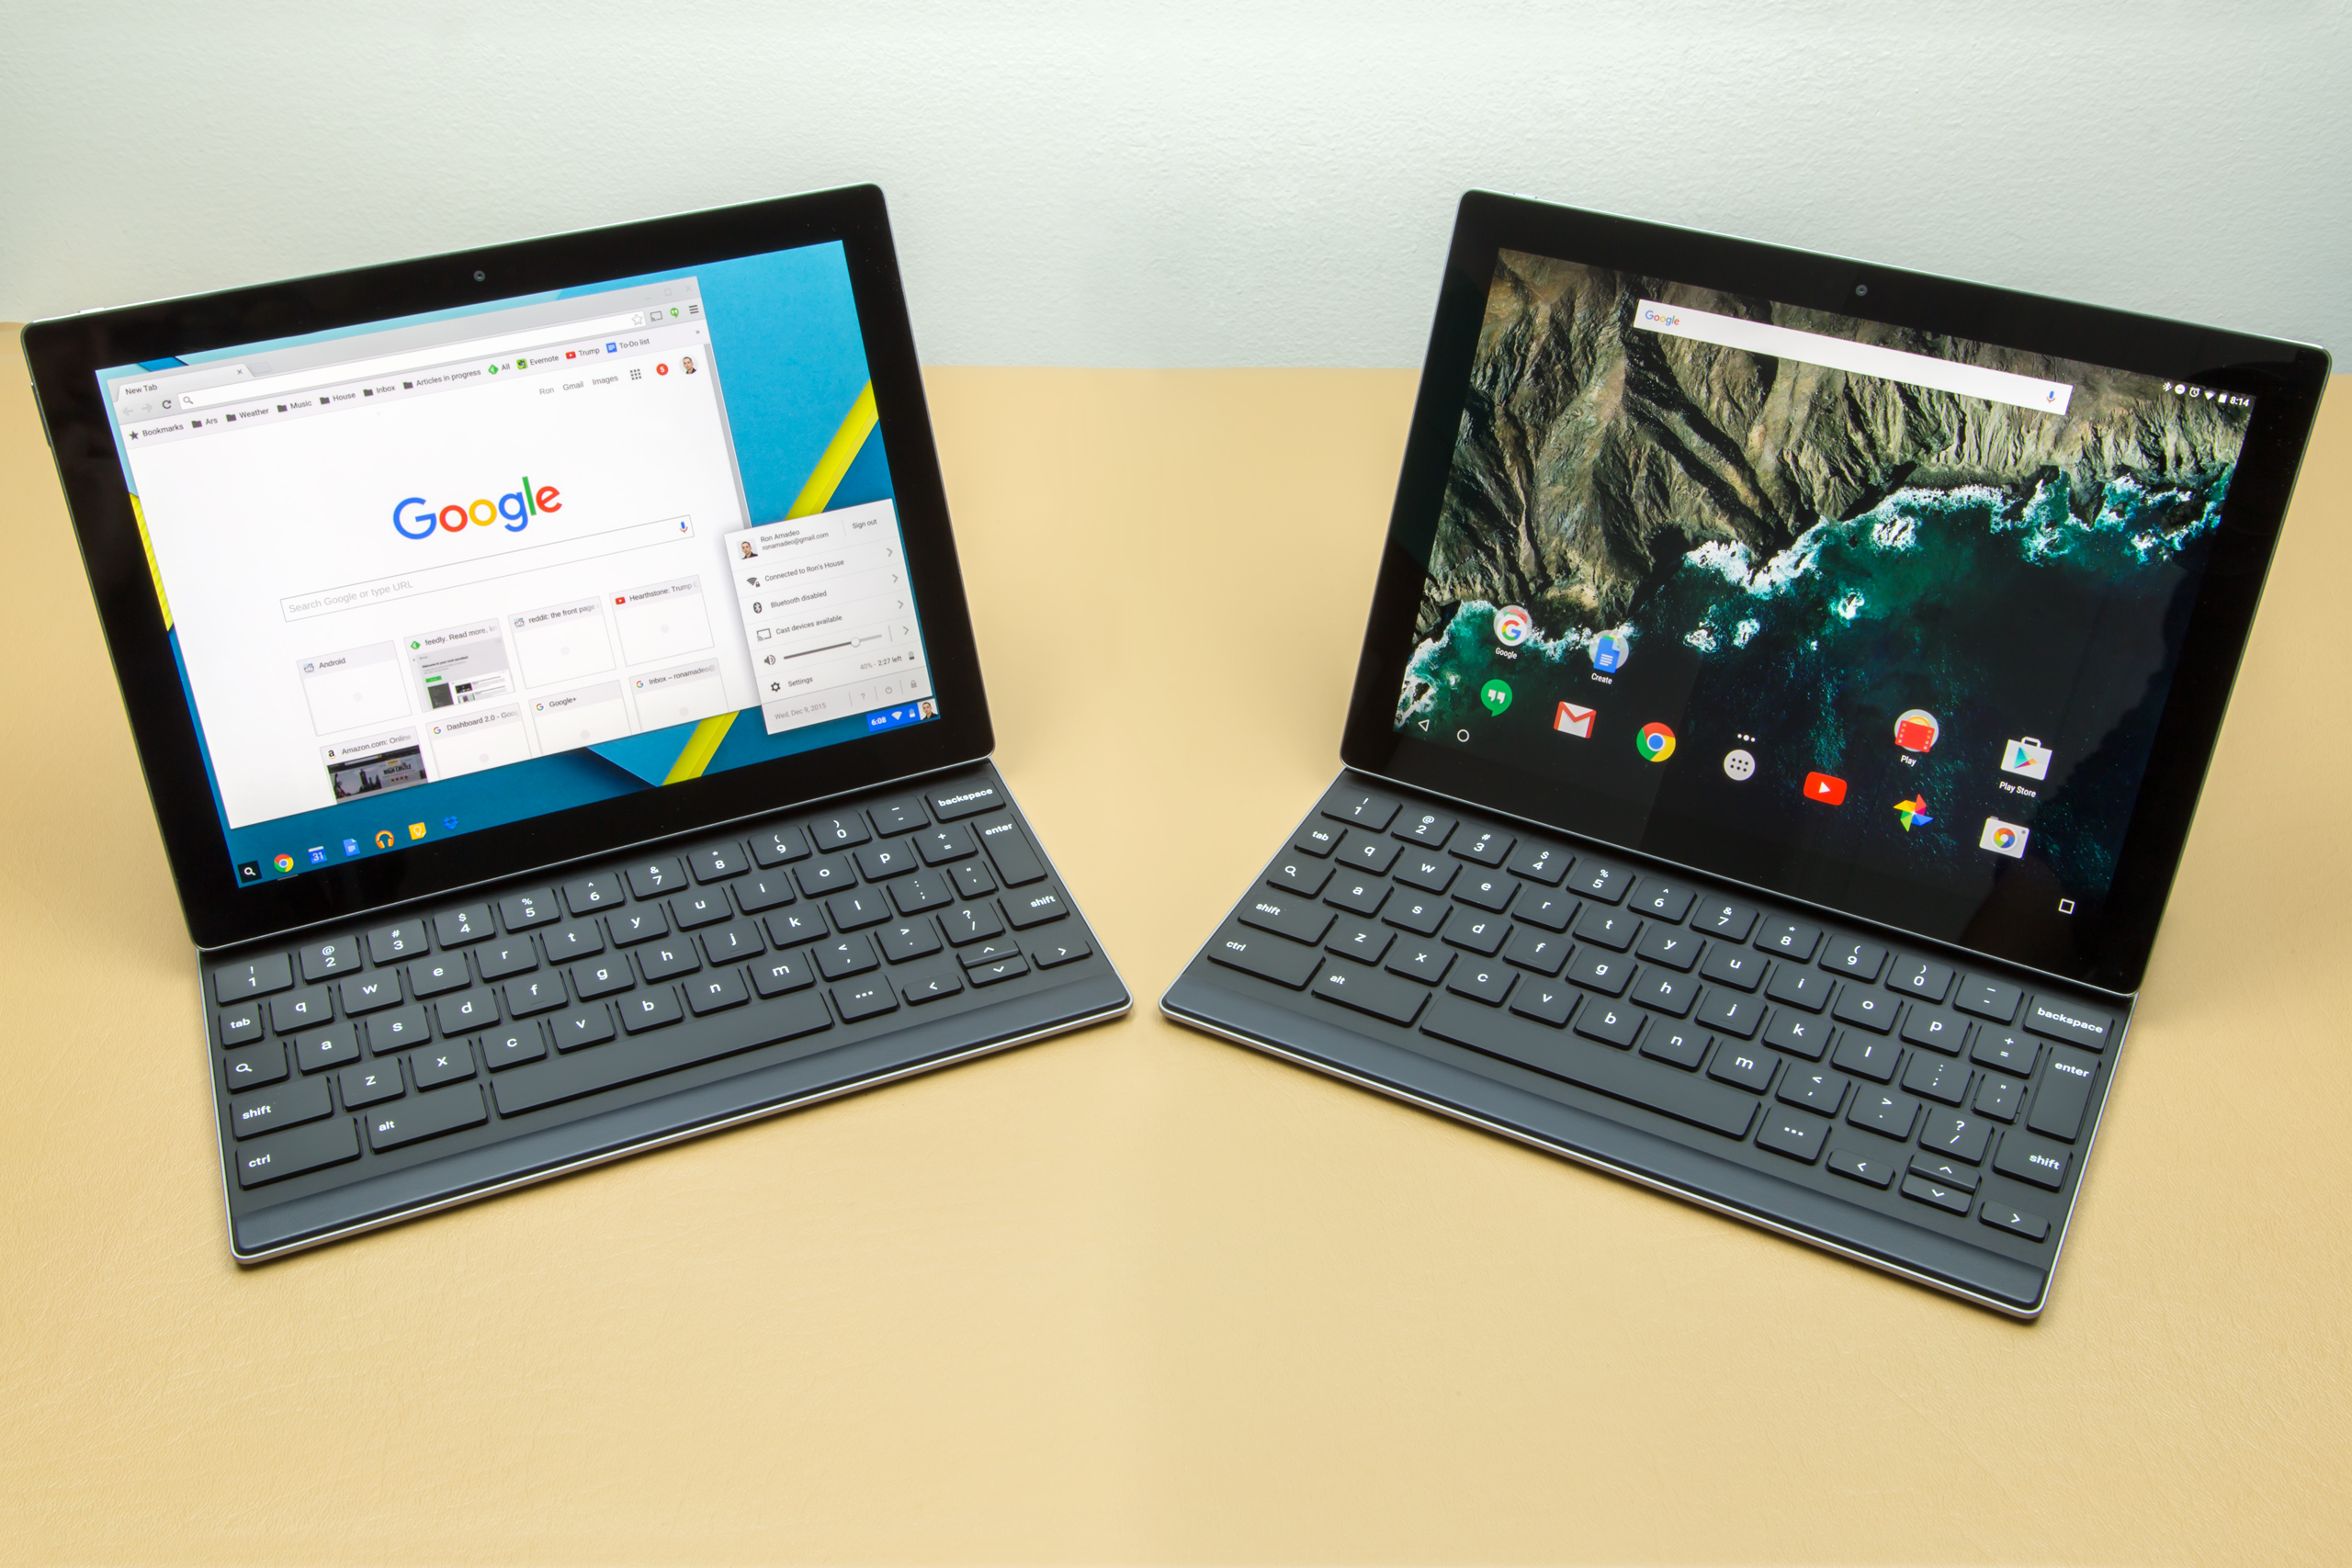 The Pixel C was probably never supposed to run Android | Ars Technica